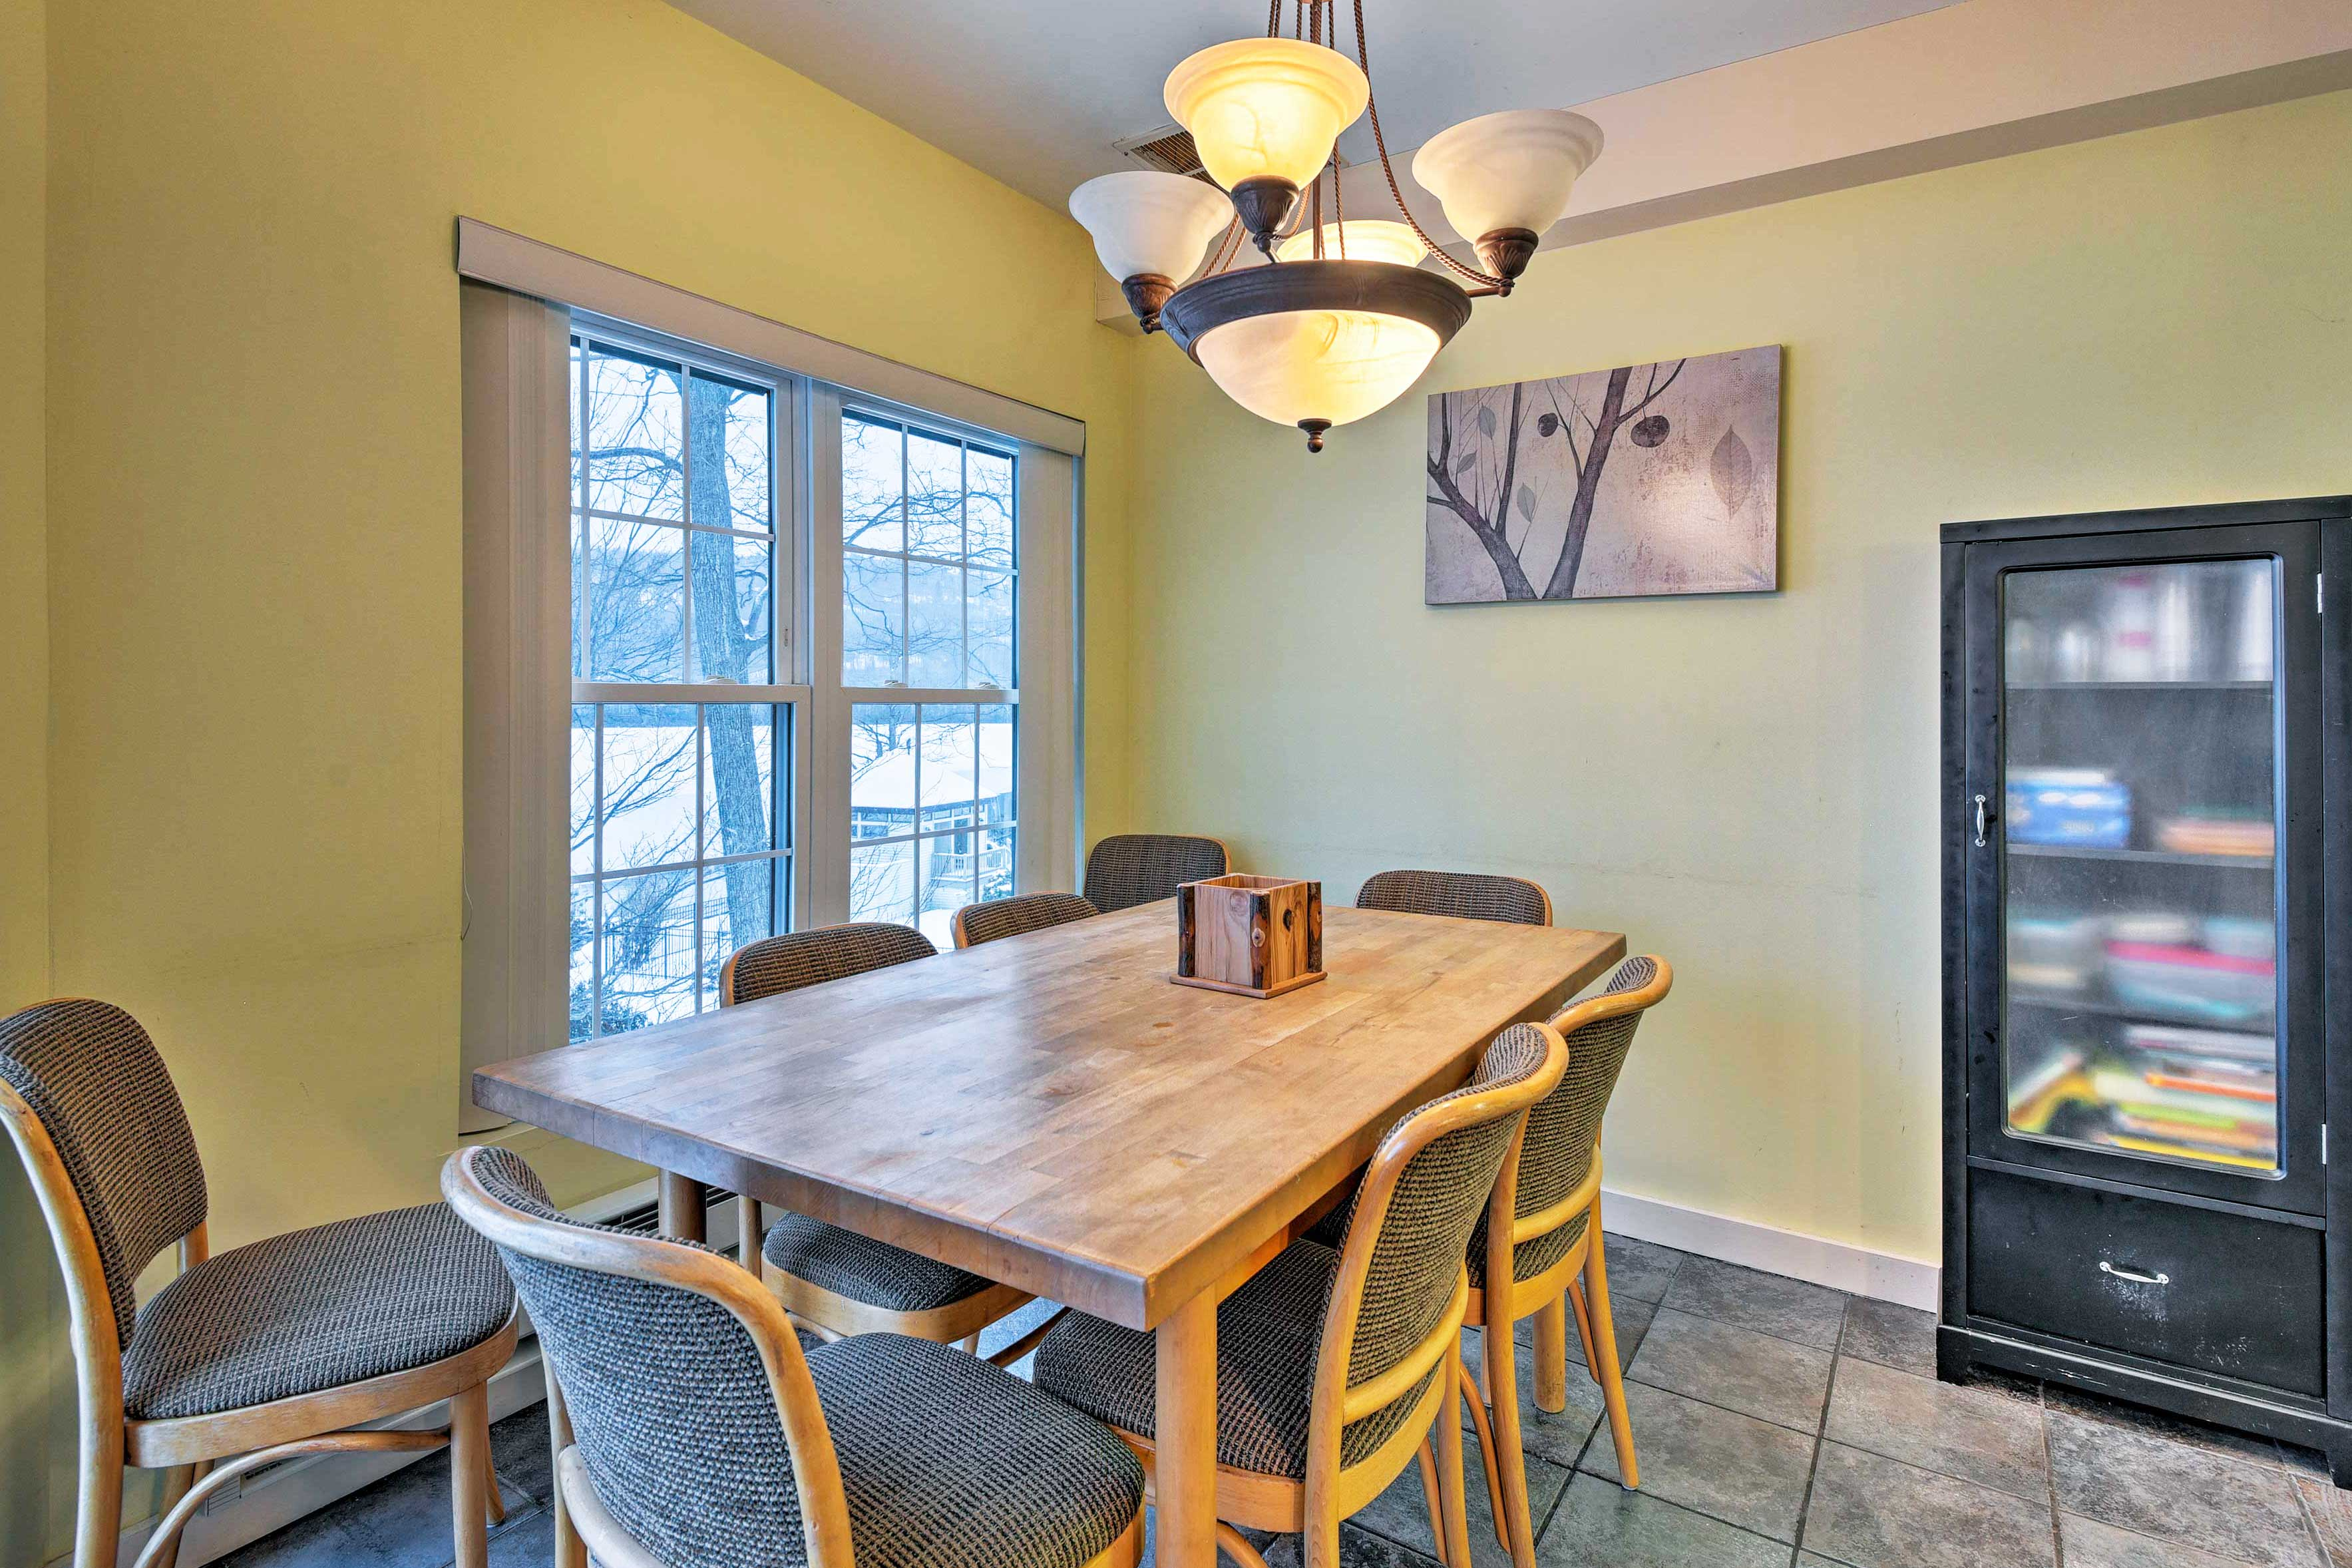 Dine at the large wood table or on the furnished deck!